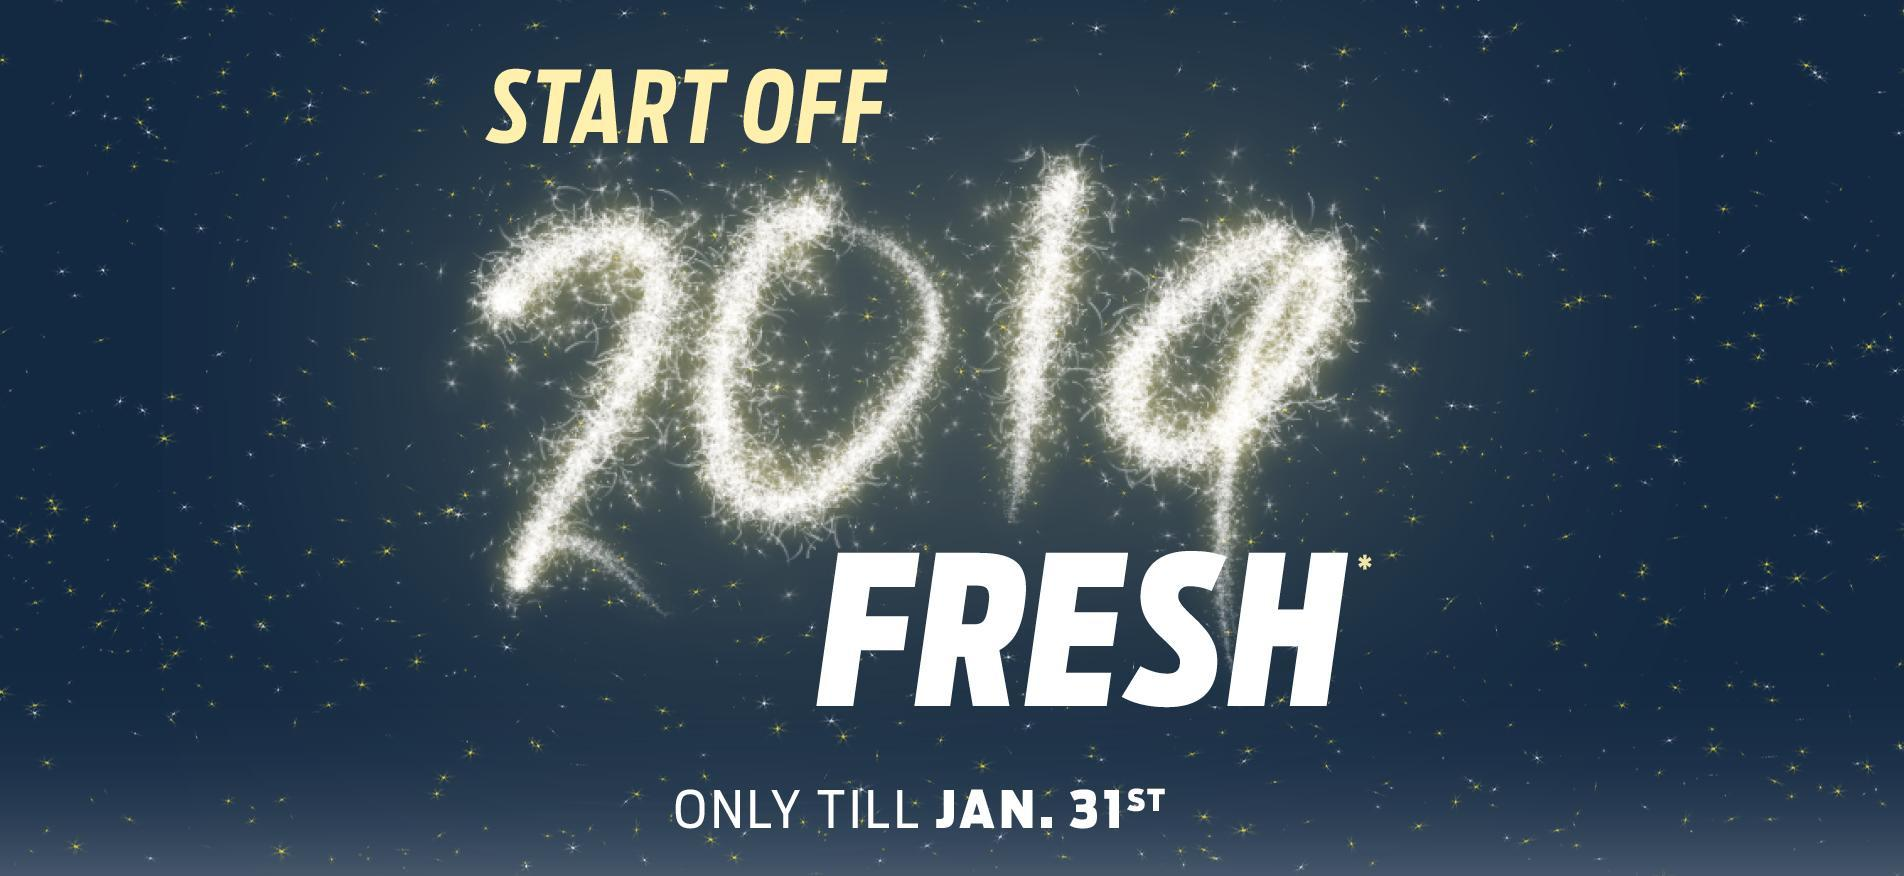 Start Off 2019 Fresh - Desktop